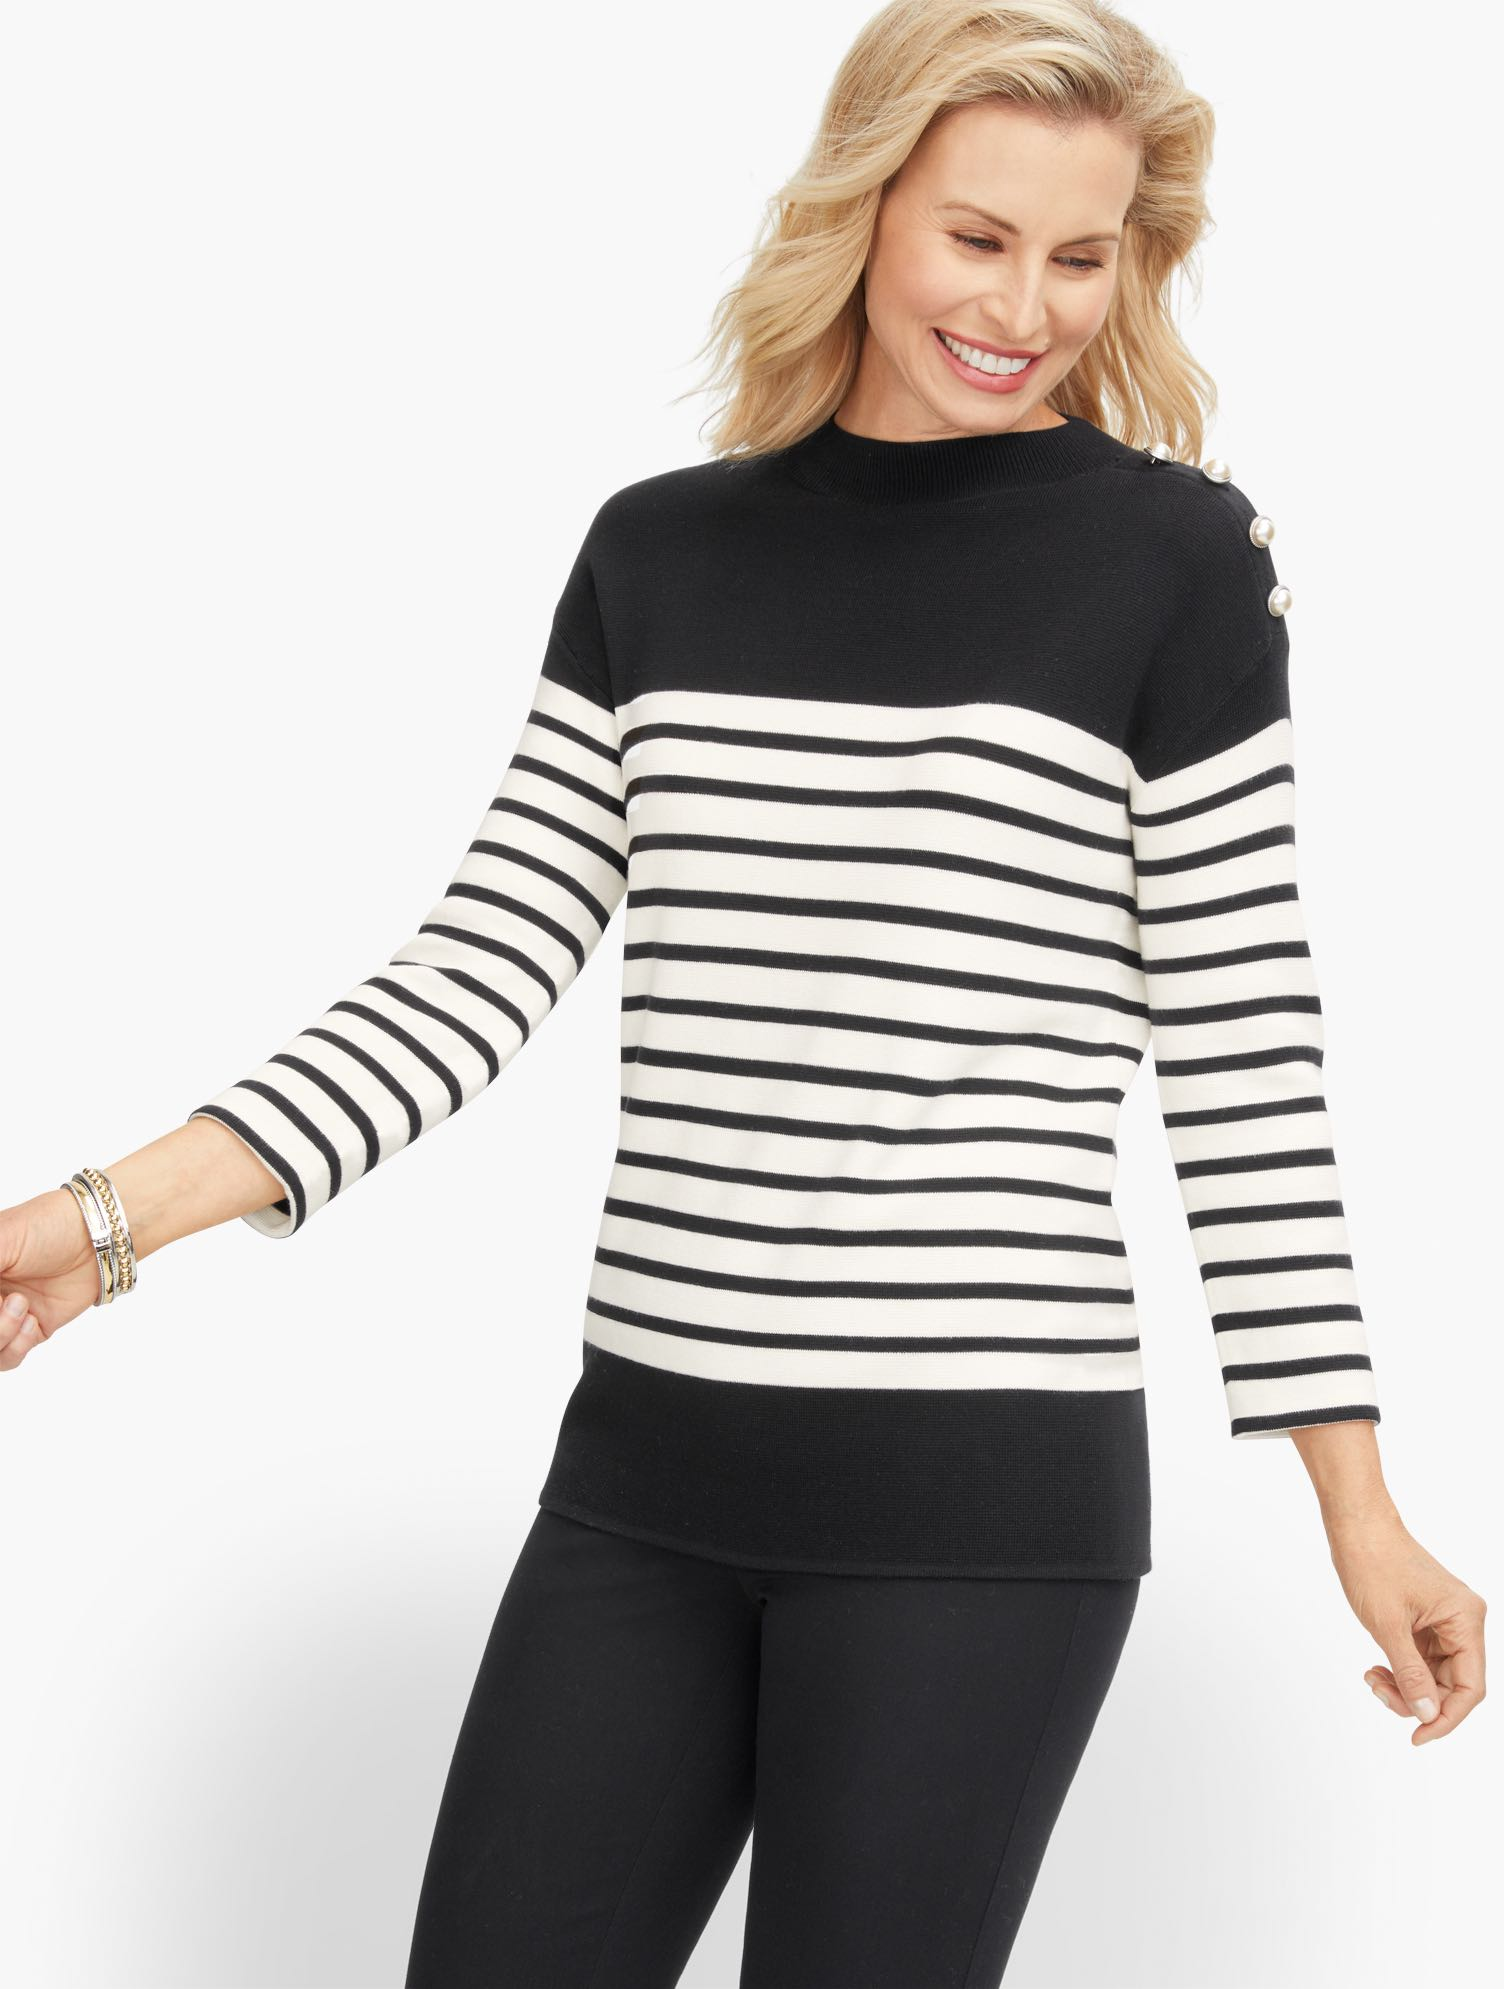 Our mockneck stripe sweater. In a refined cotton blend. The moment you feel it, you\\\'ll know how special it is. Buttons at shoulder add an extra dose of fashion interest. Features Sleeve length: Three-QuarterNeckline: MockHits: At hipClosure: PulloverImported Fit: Misses: 25 1/2 inches; Petite: 24 1/2 inches Material: 60% Cotton, 40% Viscose Care: Machine Wash; Reshape, lay flat to dry Mockneck Stripe Sweater - Black/Ivory - XL Talbots